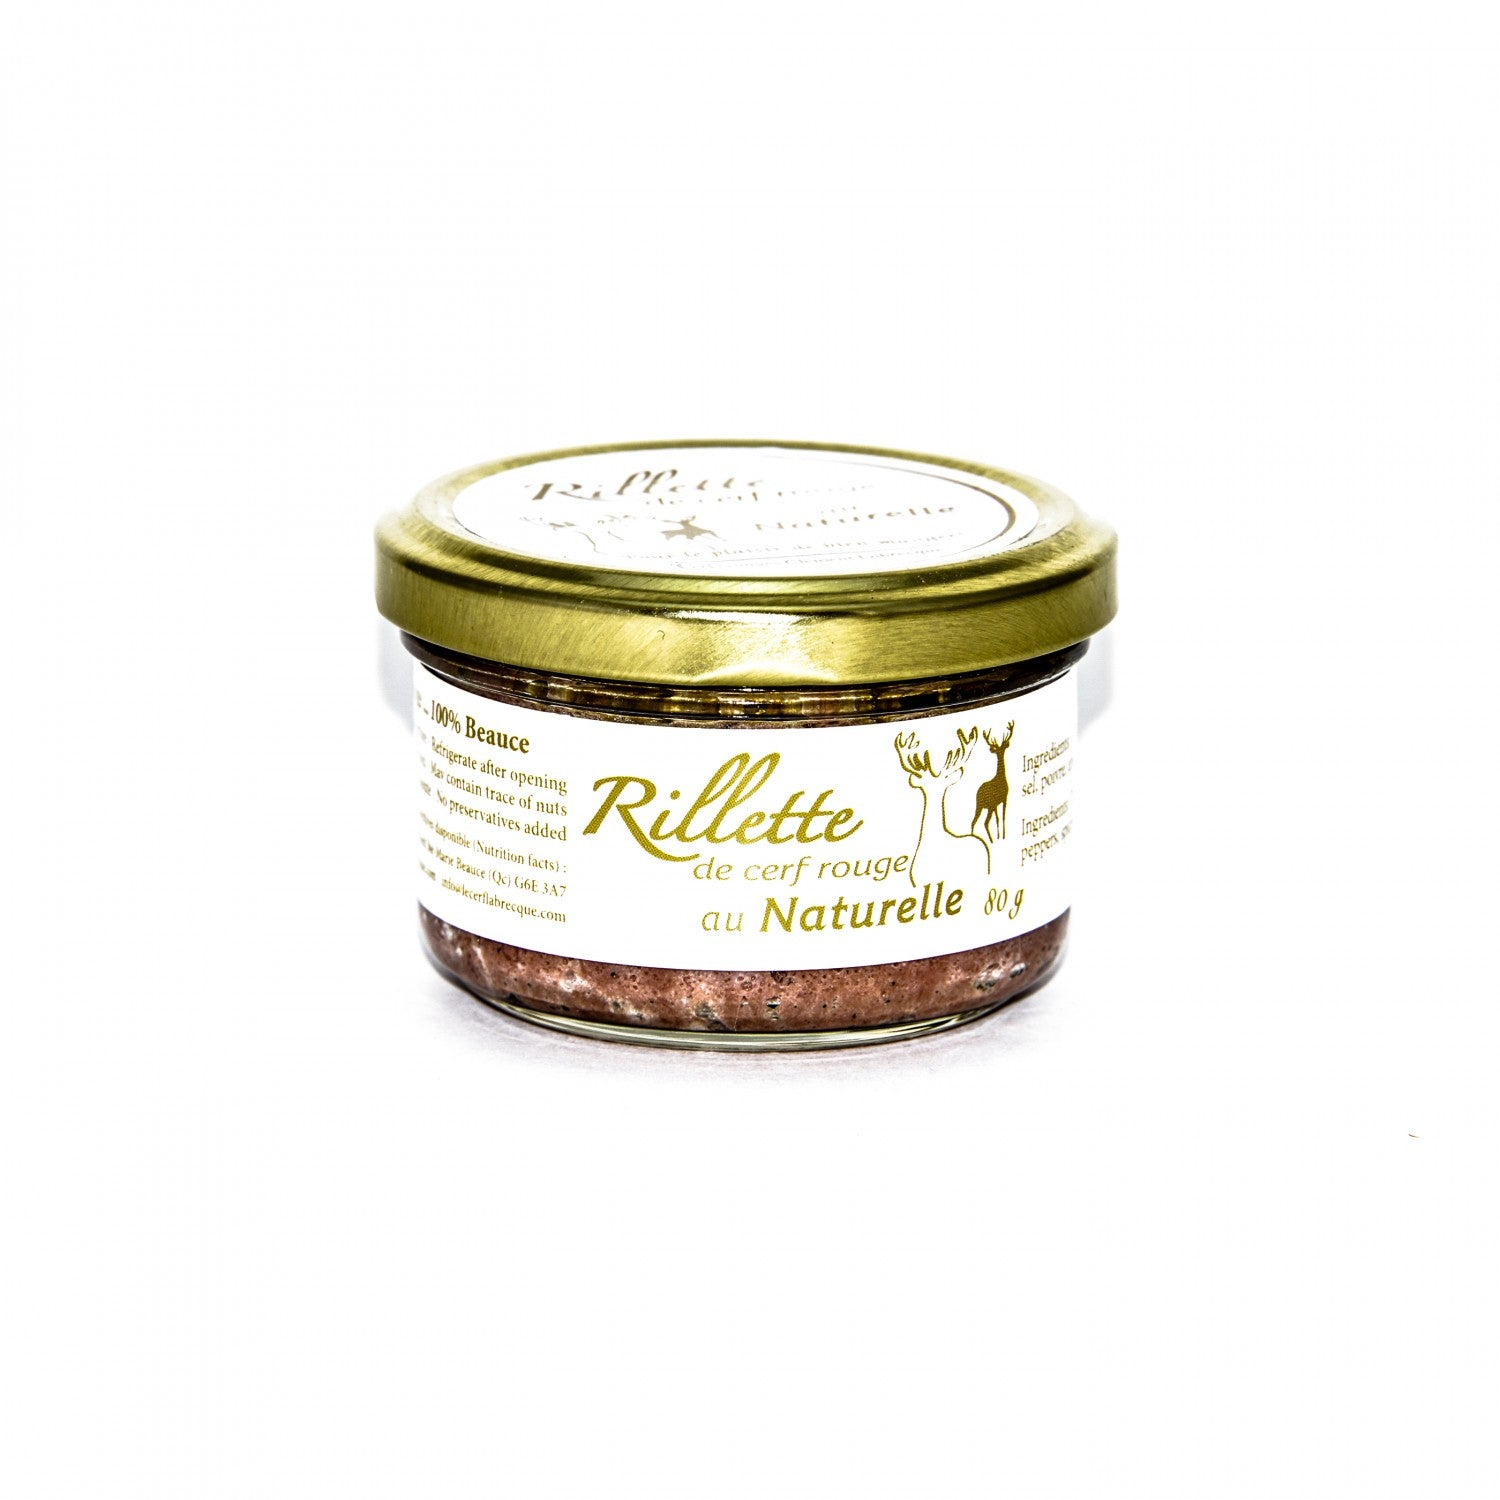 Rillette cerf rouge - Au naturelle